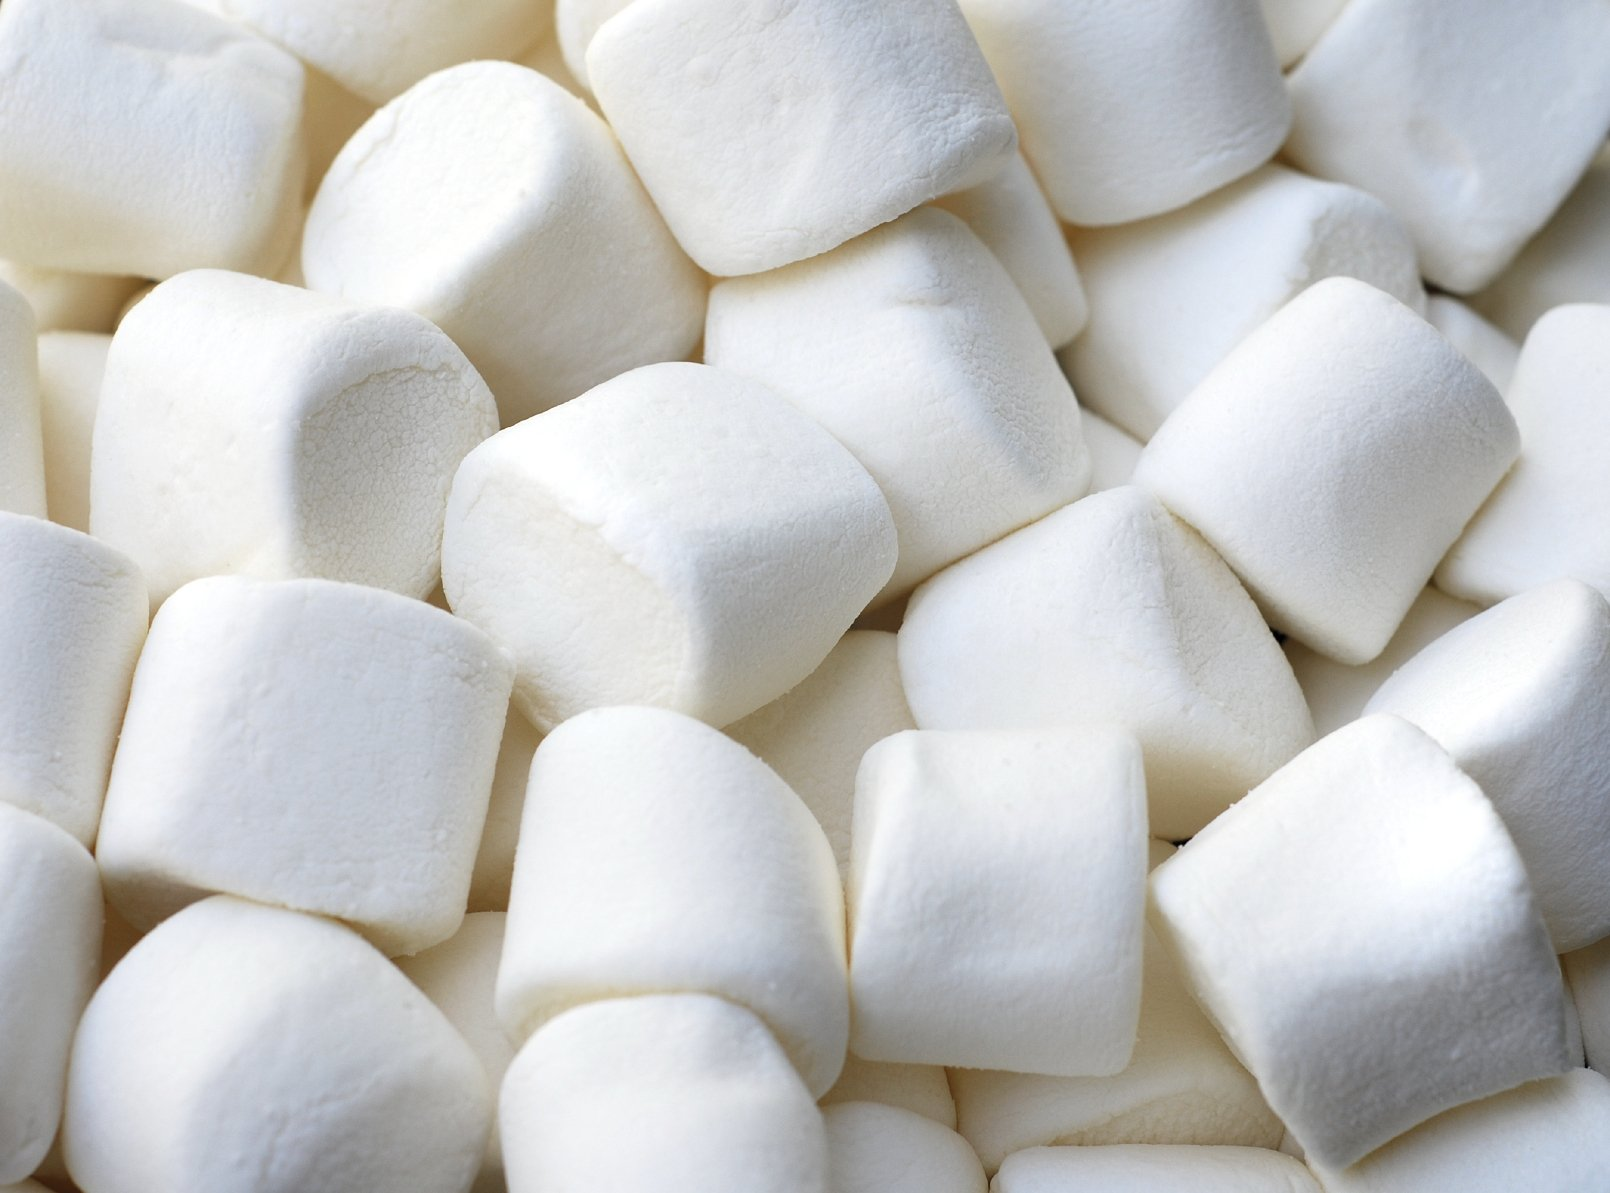 Marshmallows used to soothe sore throat and cough